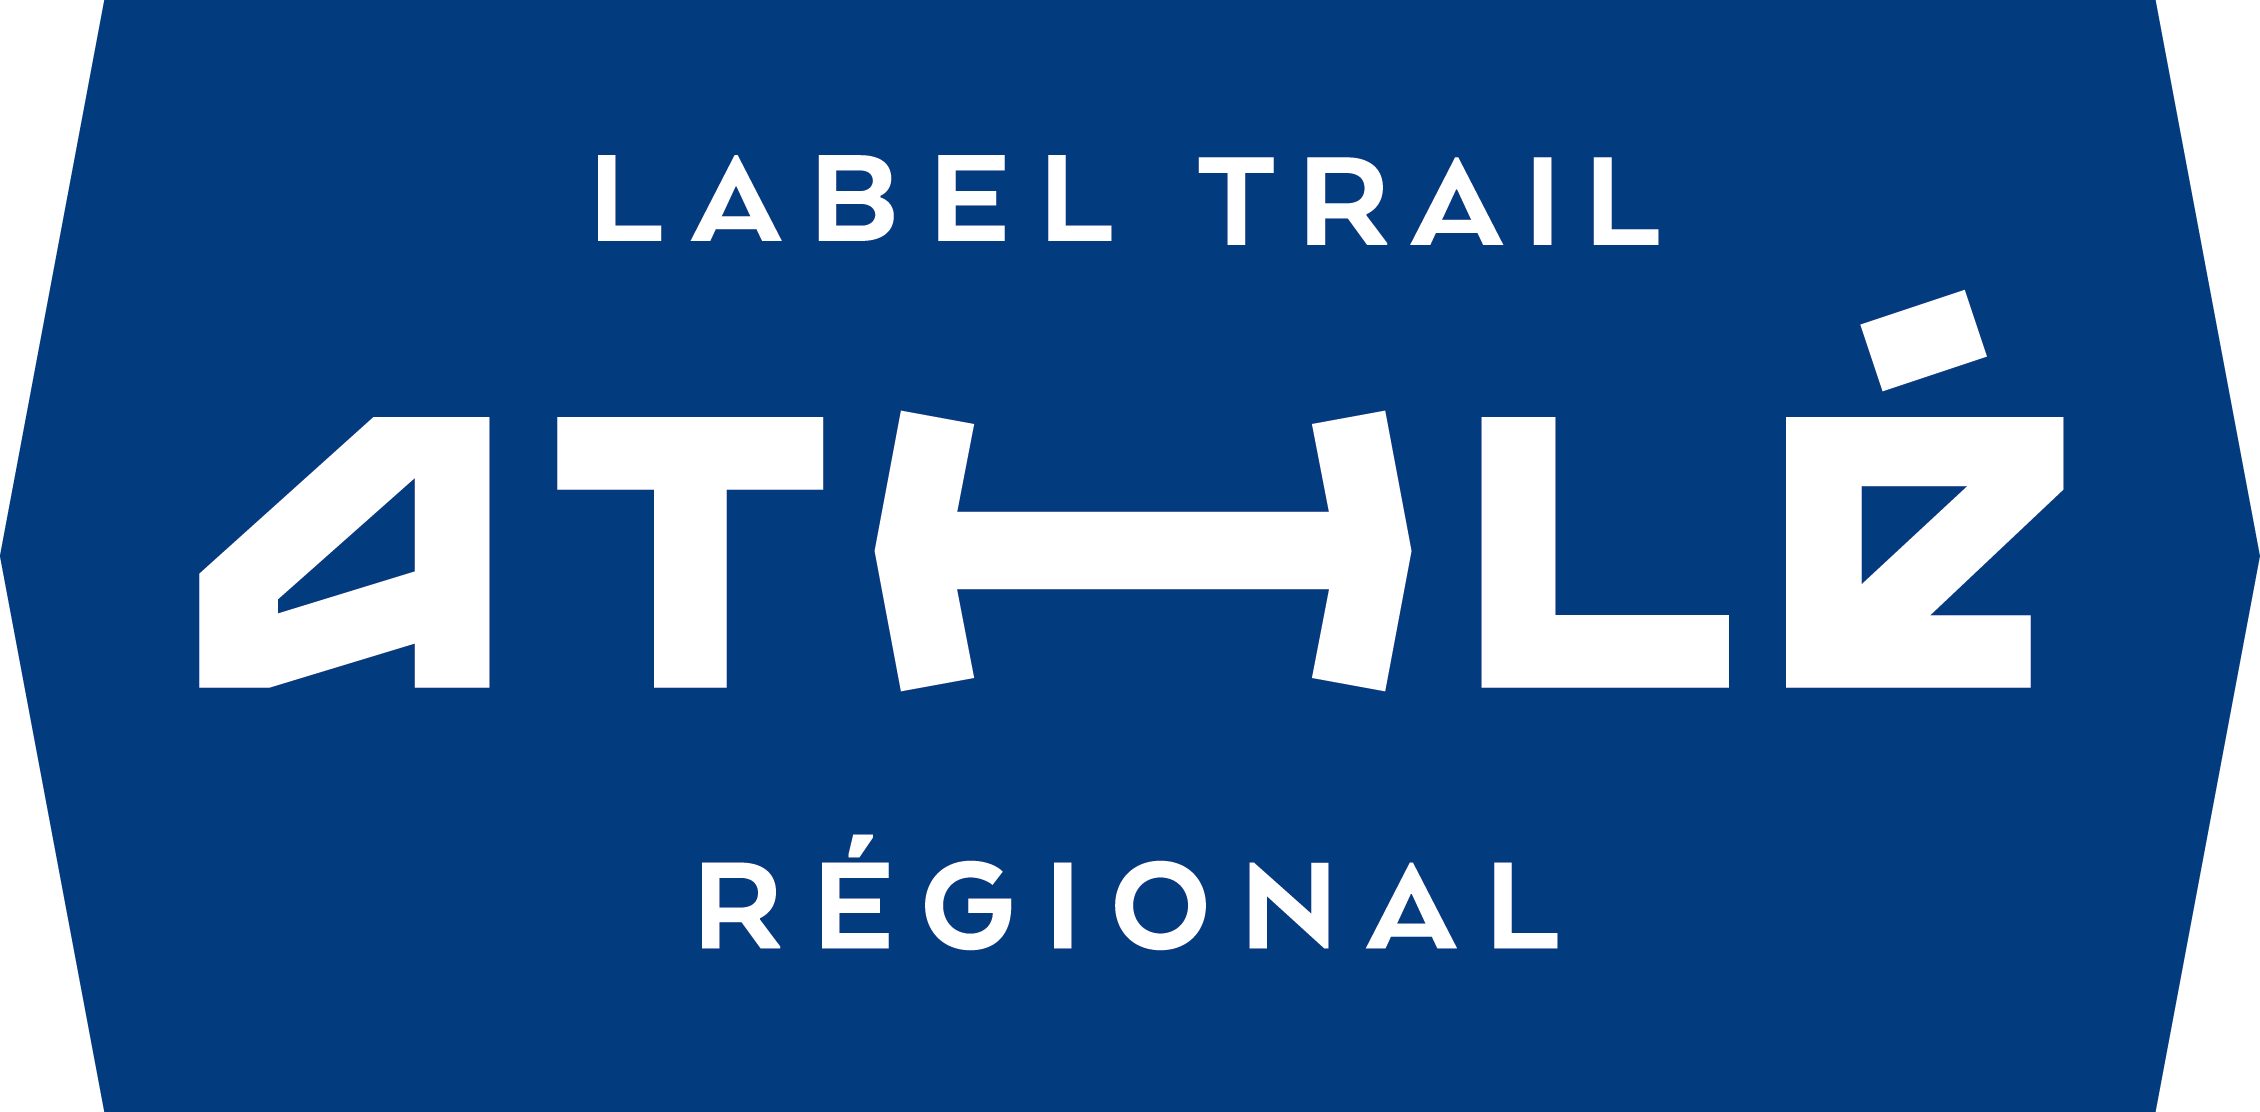 Label_Trail_Regional_ATHLEbleu.png